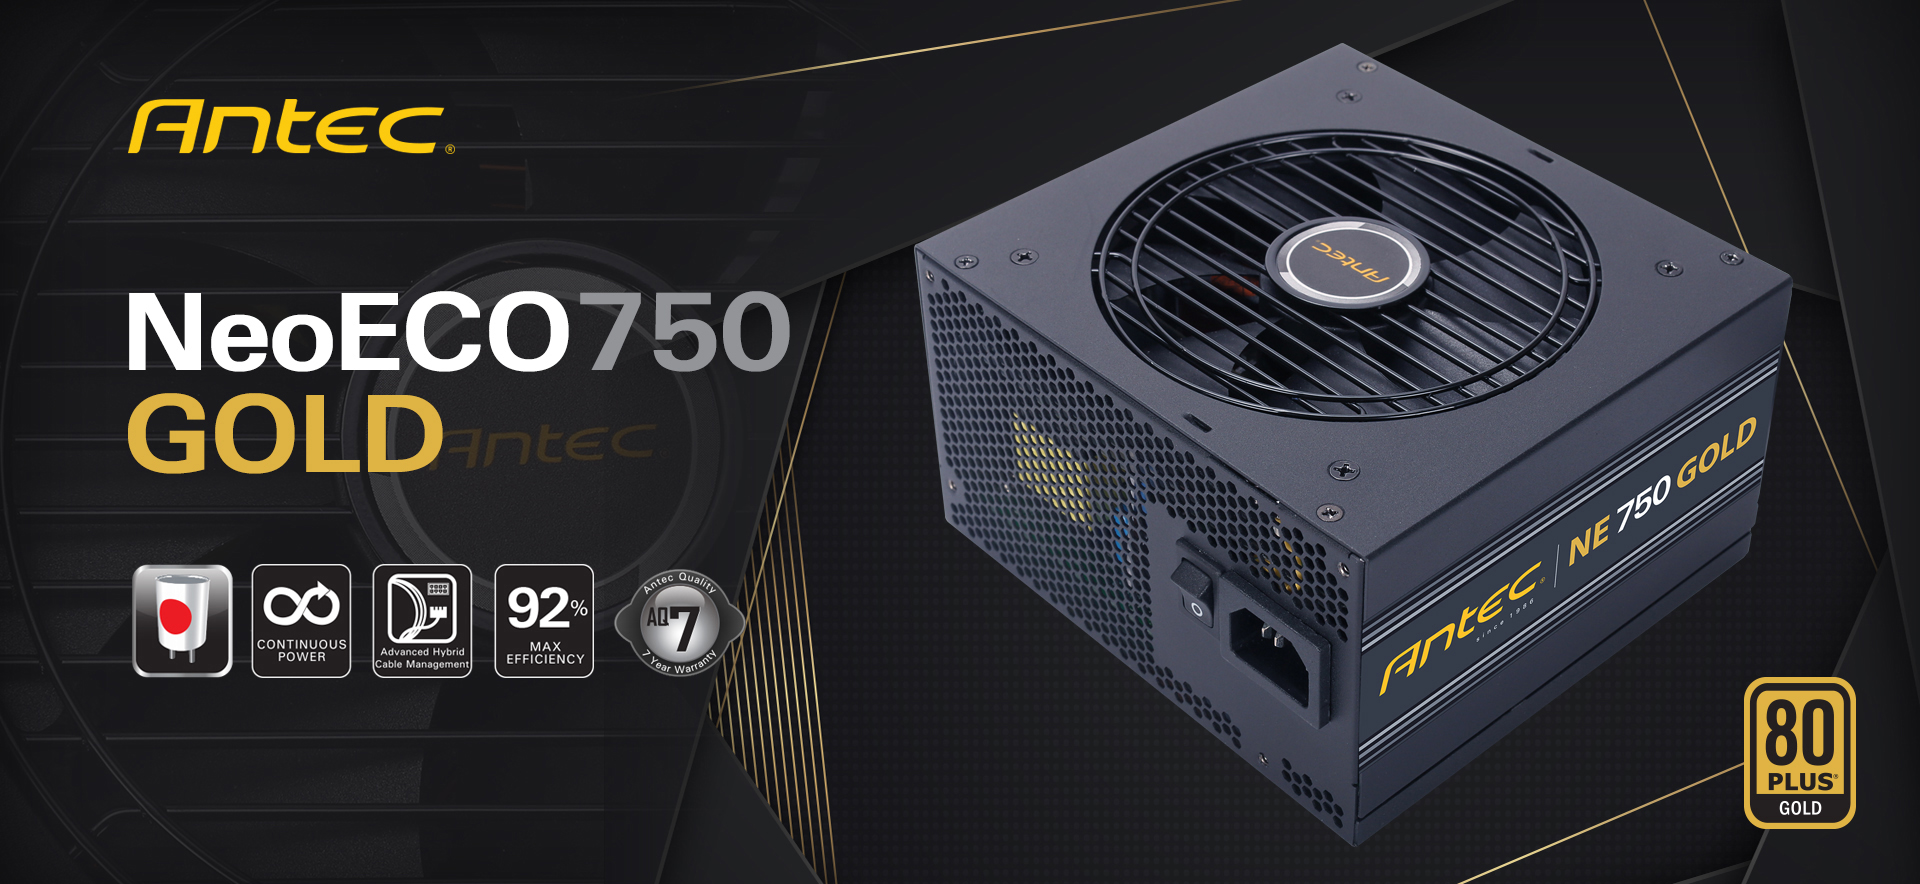 Antec Banner Showing the NeoECO 750 GOLD PSU Angled Down to the Right, Along with Graphics and Text that Indicate: Japanese-Made Capacitors, Continuous Power, Advanced Cable Management, 92% MAX EFICIENCY and AQ 7-YEAR WARRANTY